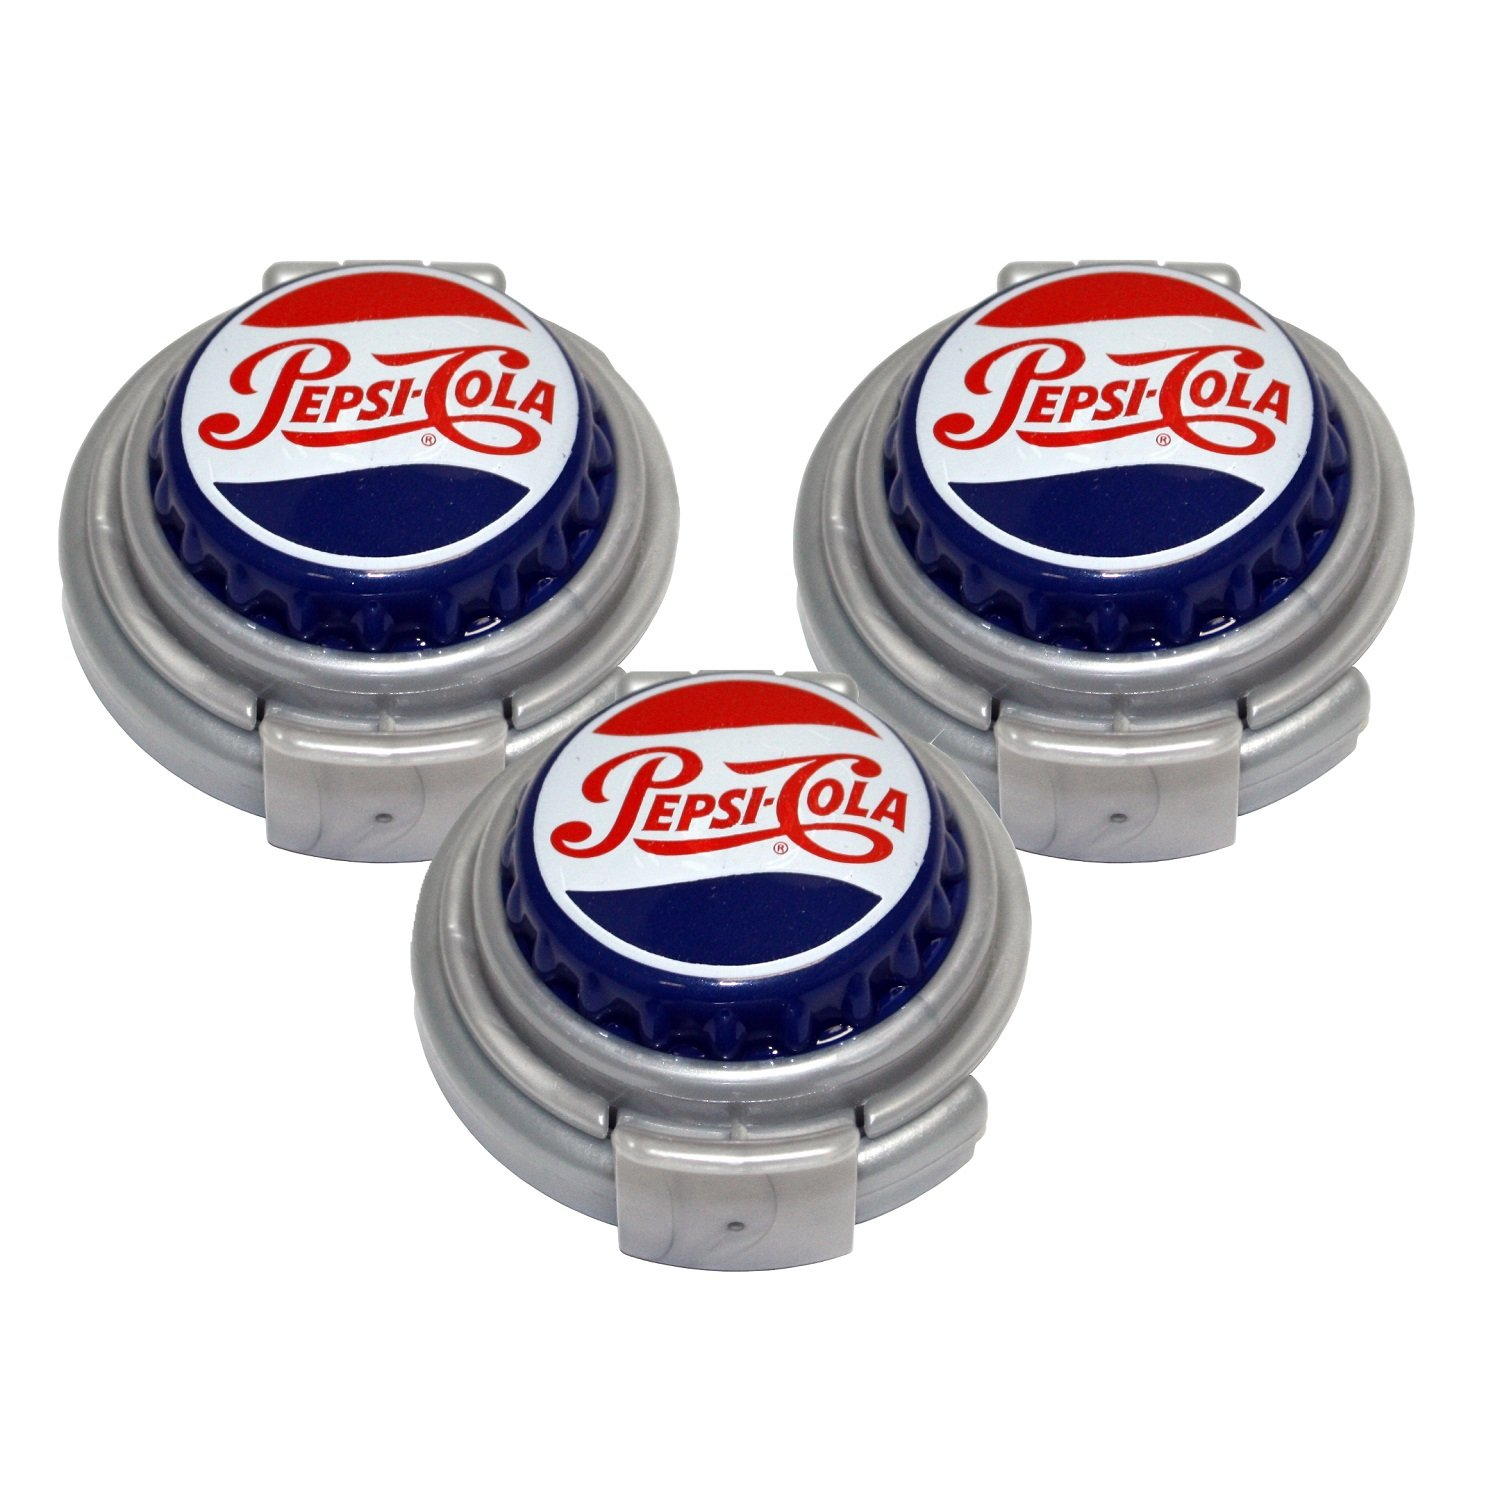 Jokari 18003P3 3 Count Pepsi Heritage Logo Soda Can Pump and Pour, Red/White/Blue